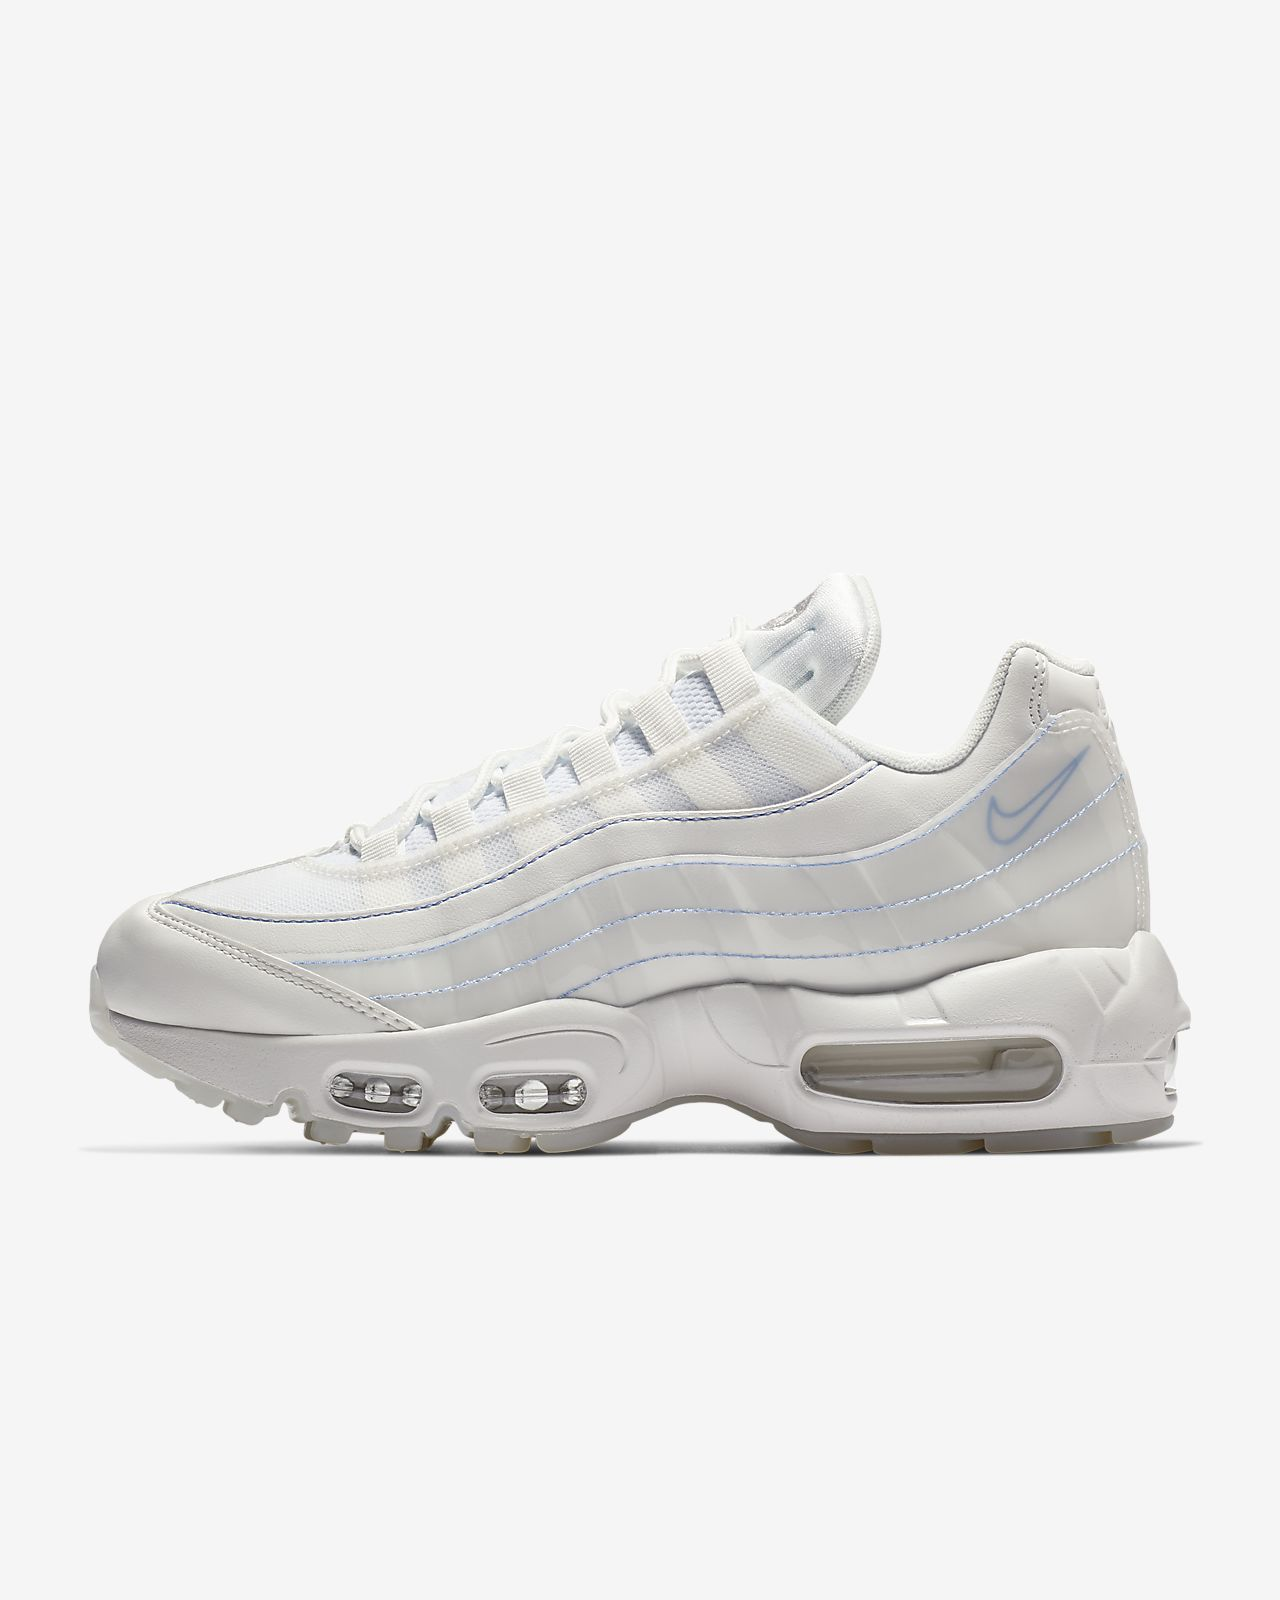 Donna Air Max 95 It Nike Se Scarpa qHT8xXwR